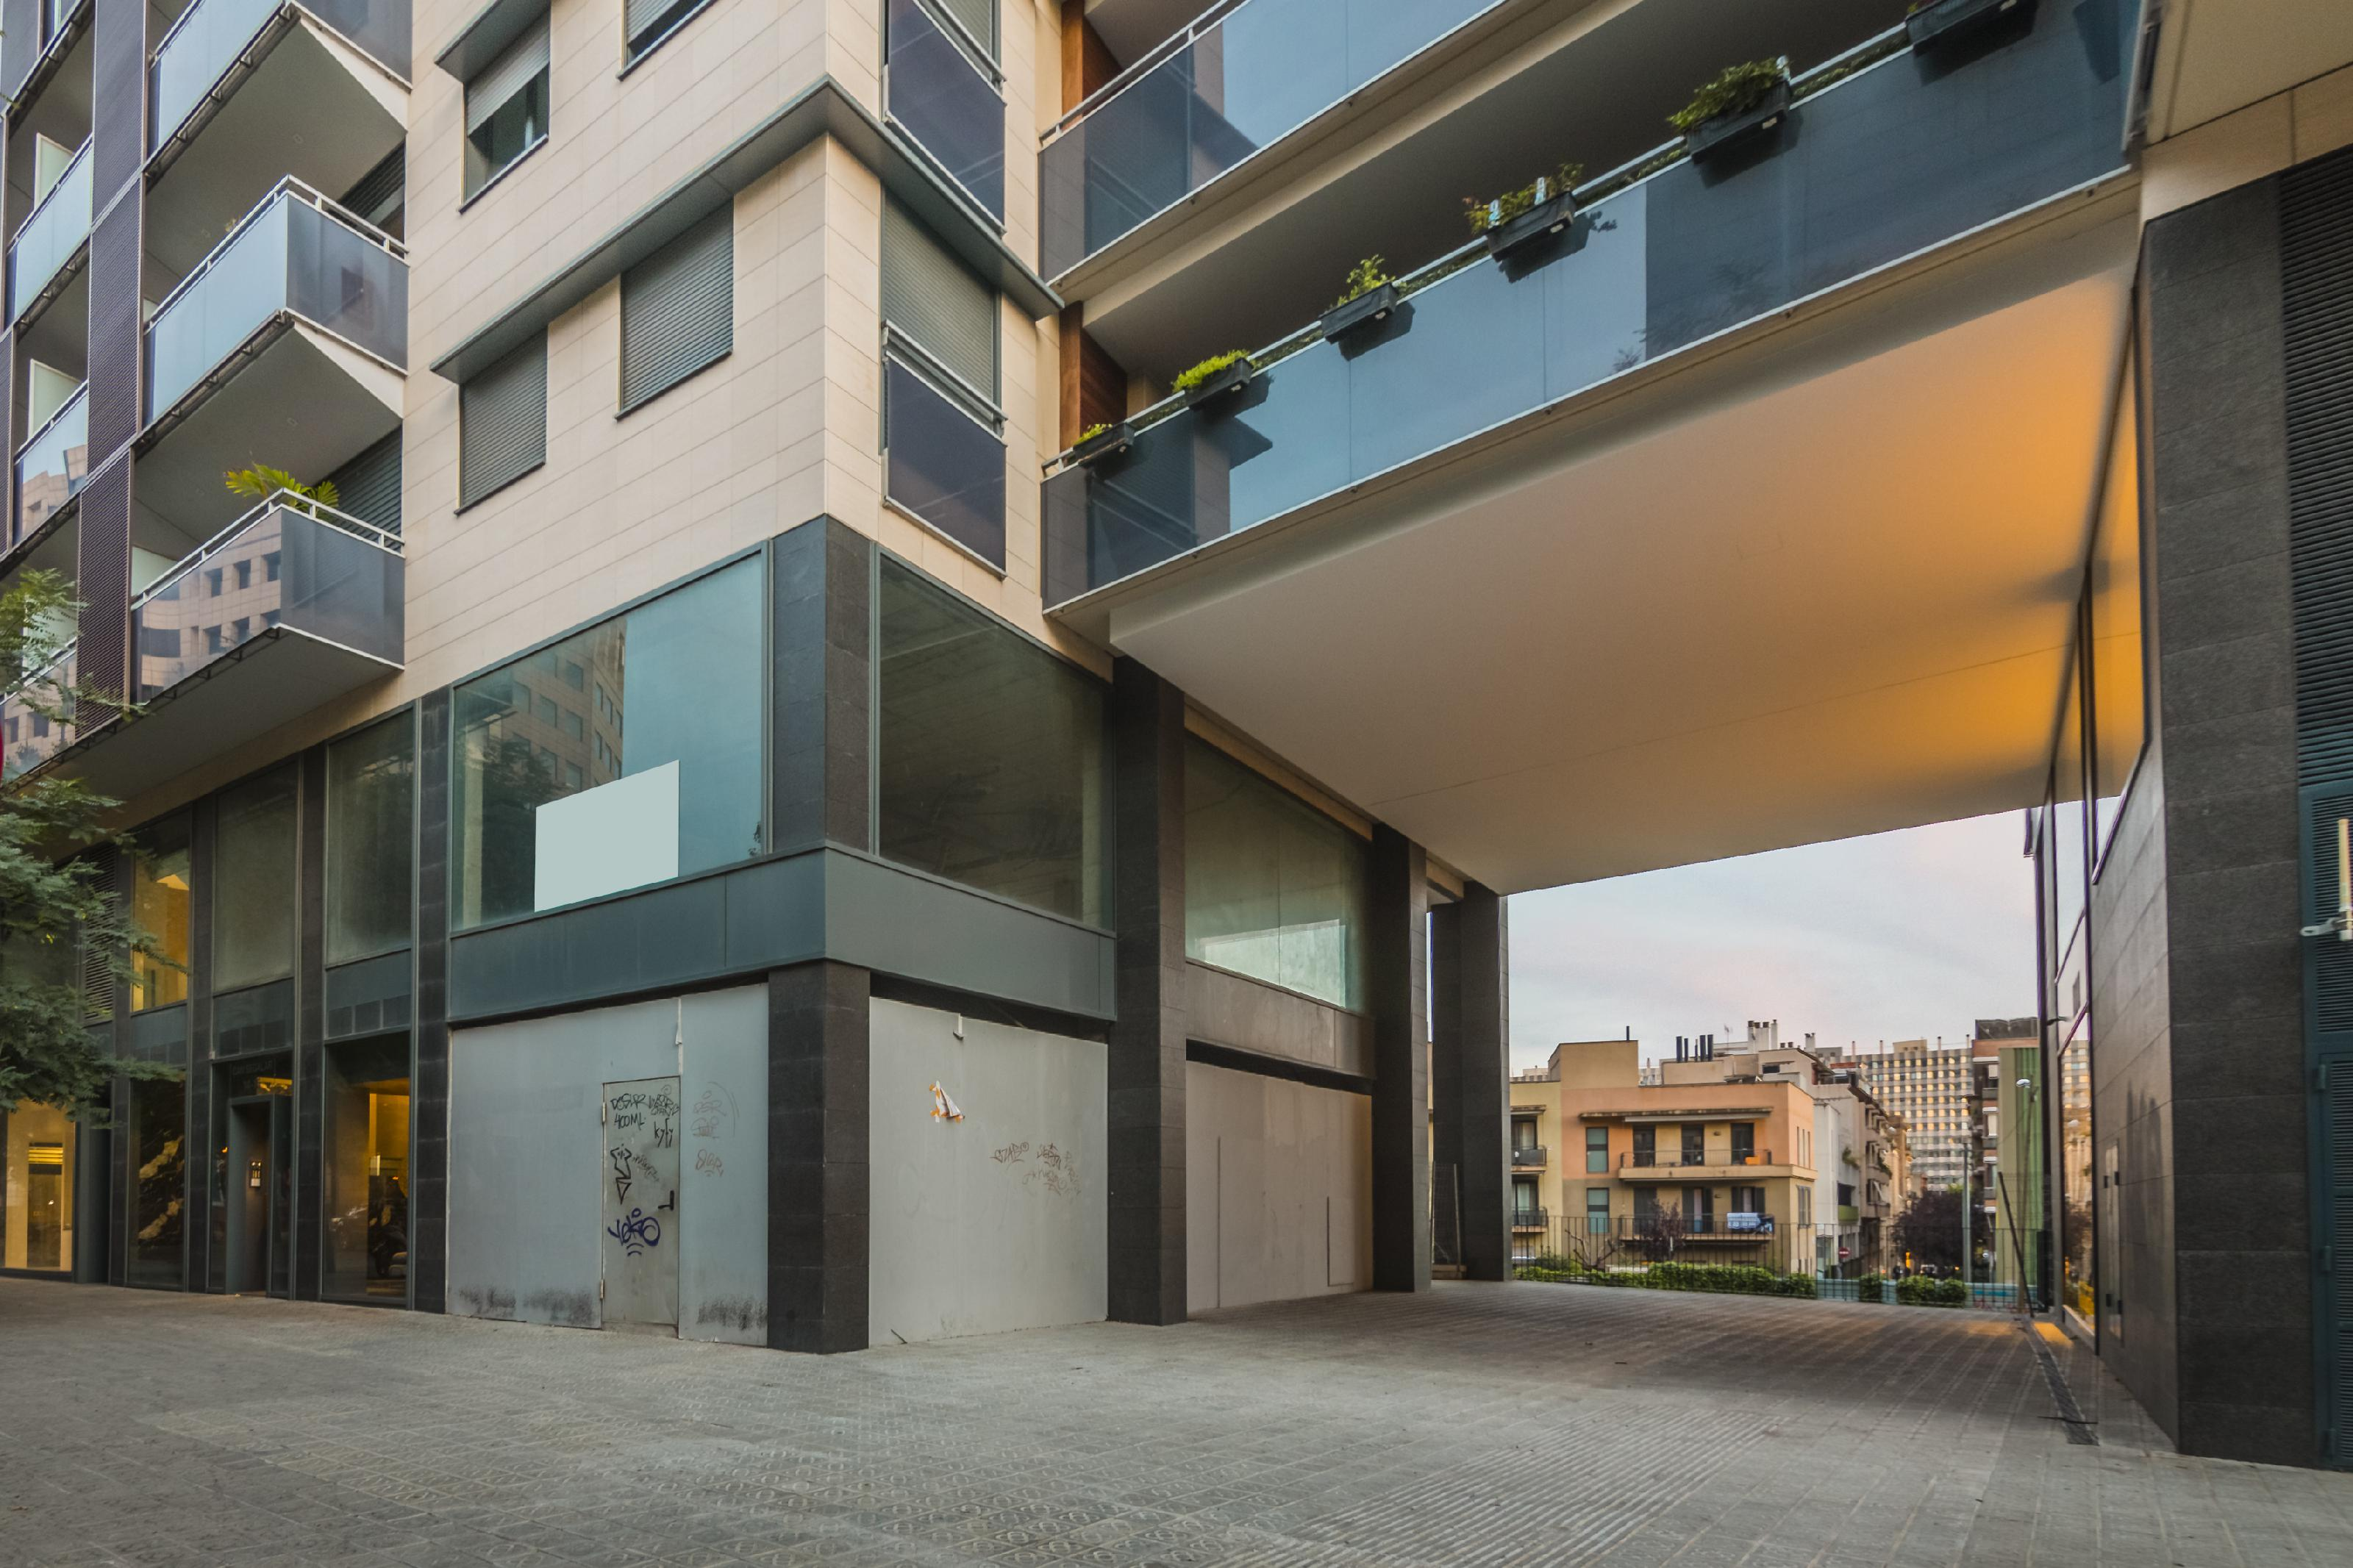 208066 Commercial Premises for sale in Les Corts, Les Corts 2